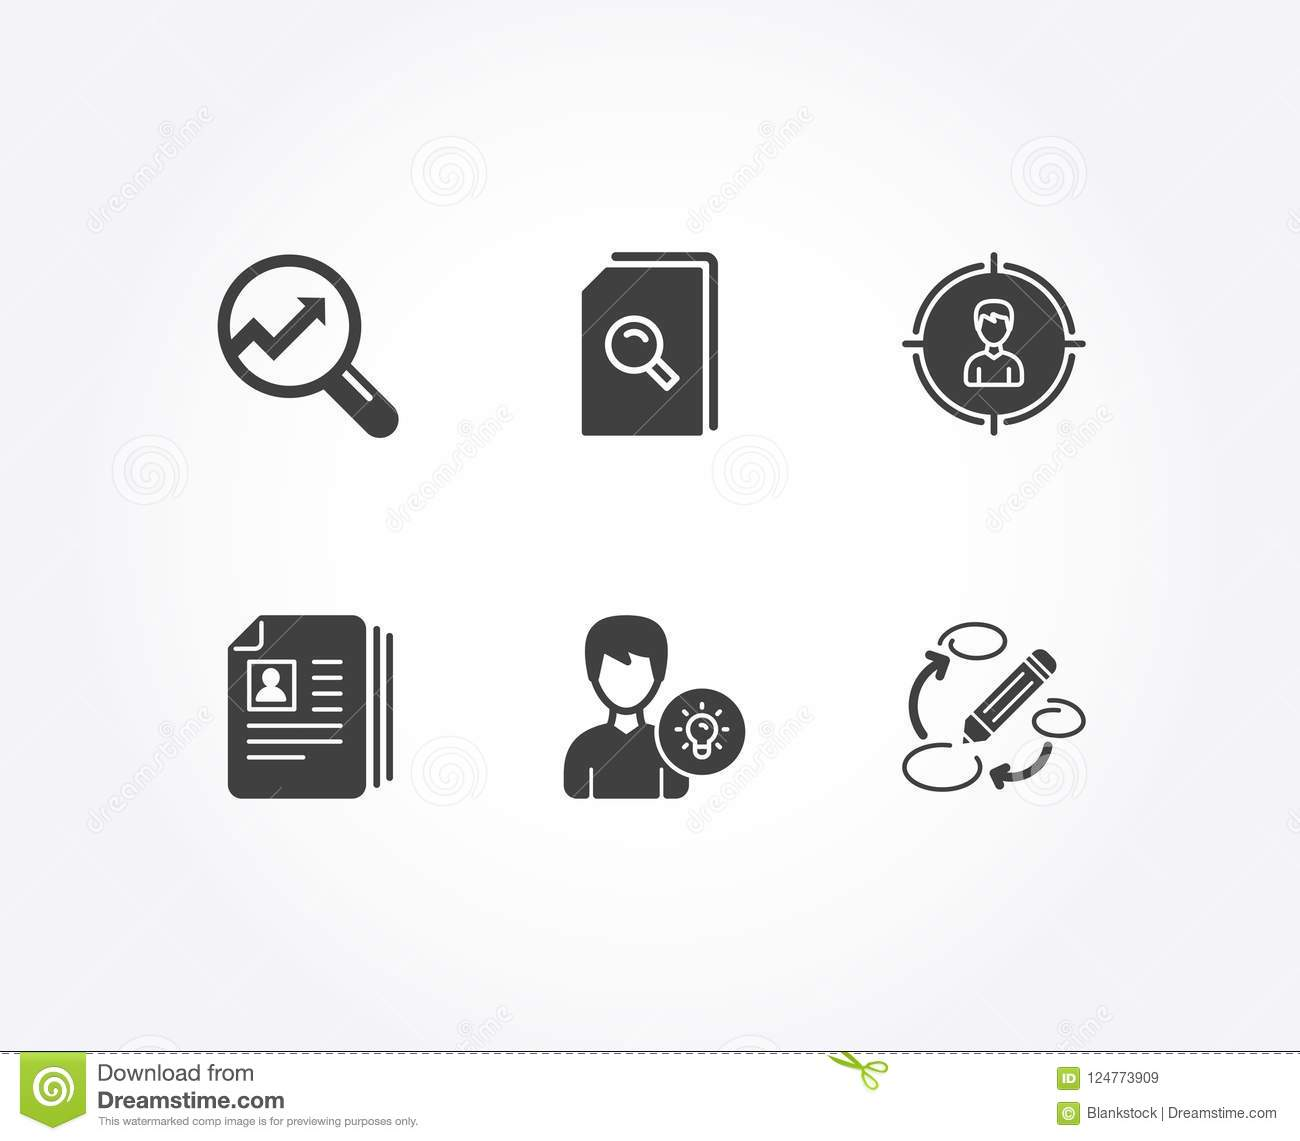 cv documents analytics and person idea icons search files